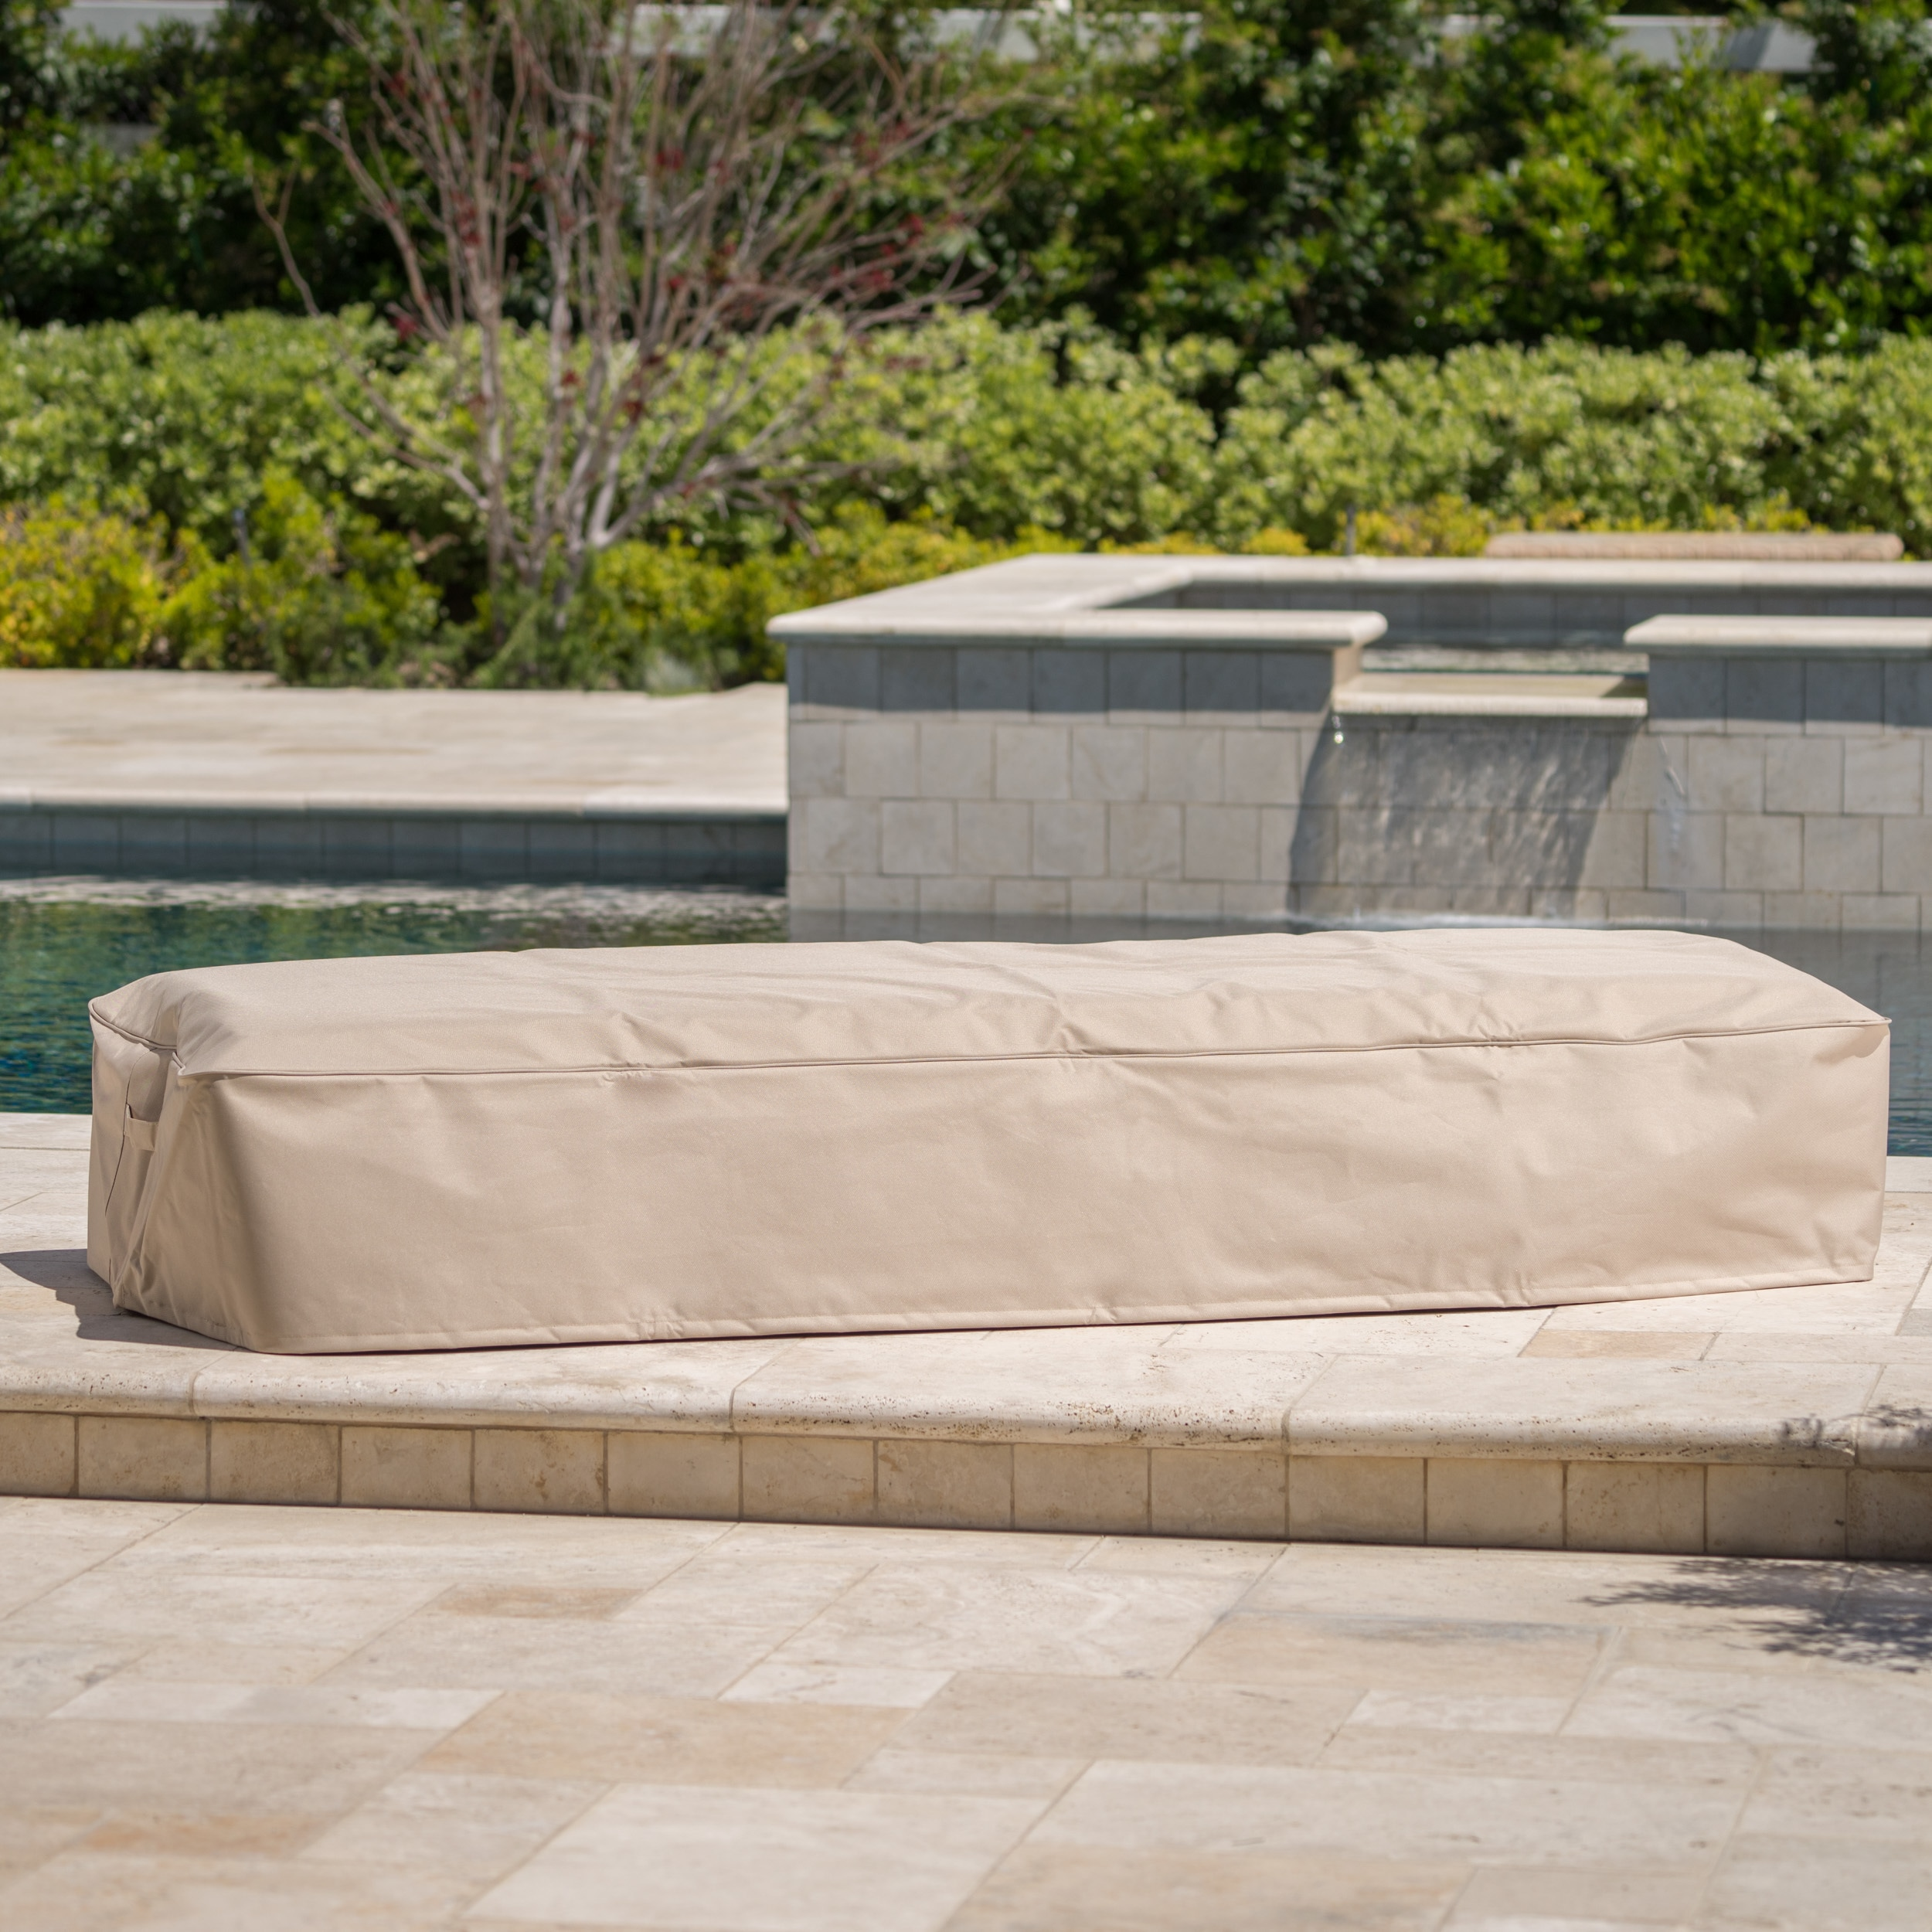 Shield Outdoor Waterproof Fabric Lounge Patio Cover Set Of 2 By Christopher Knight Home Overstock 16343426